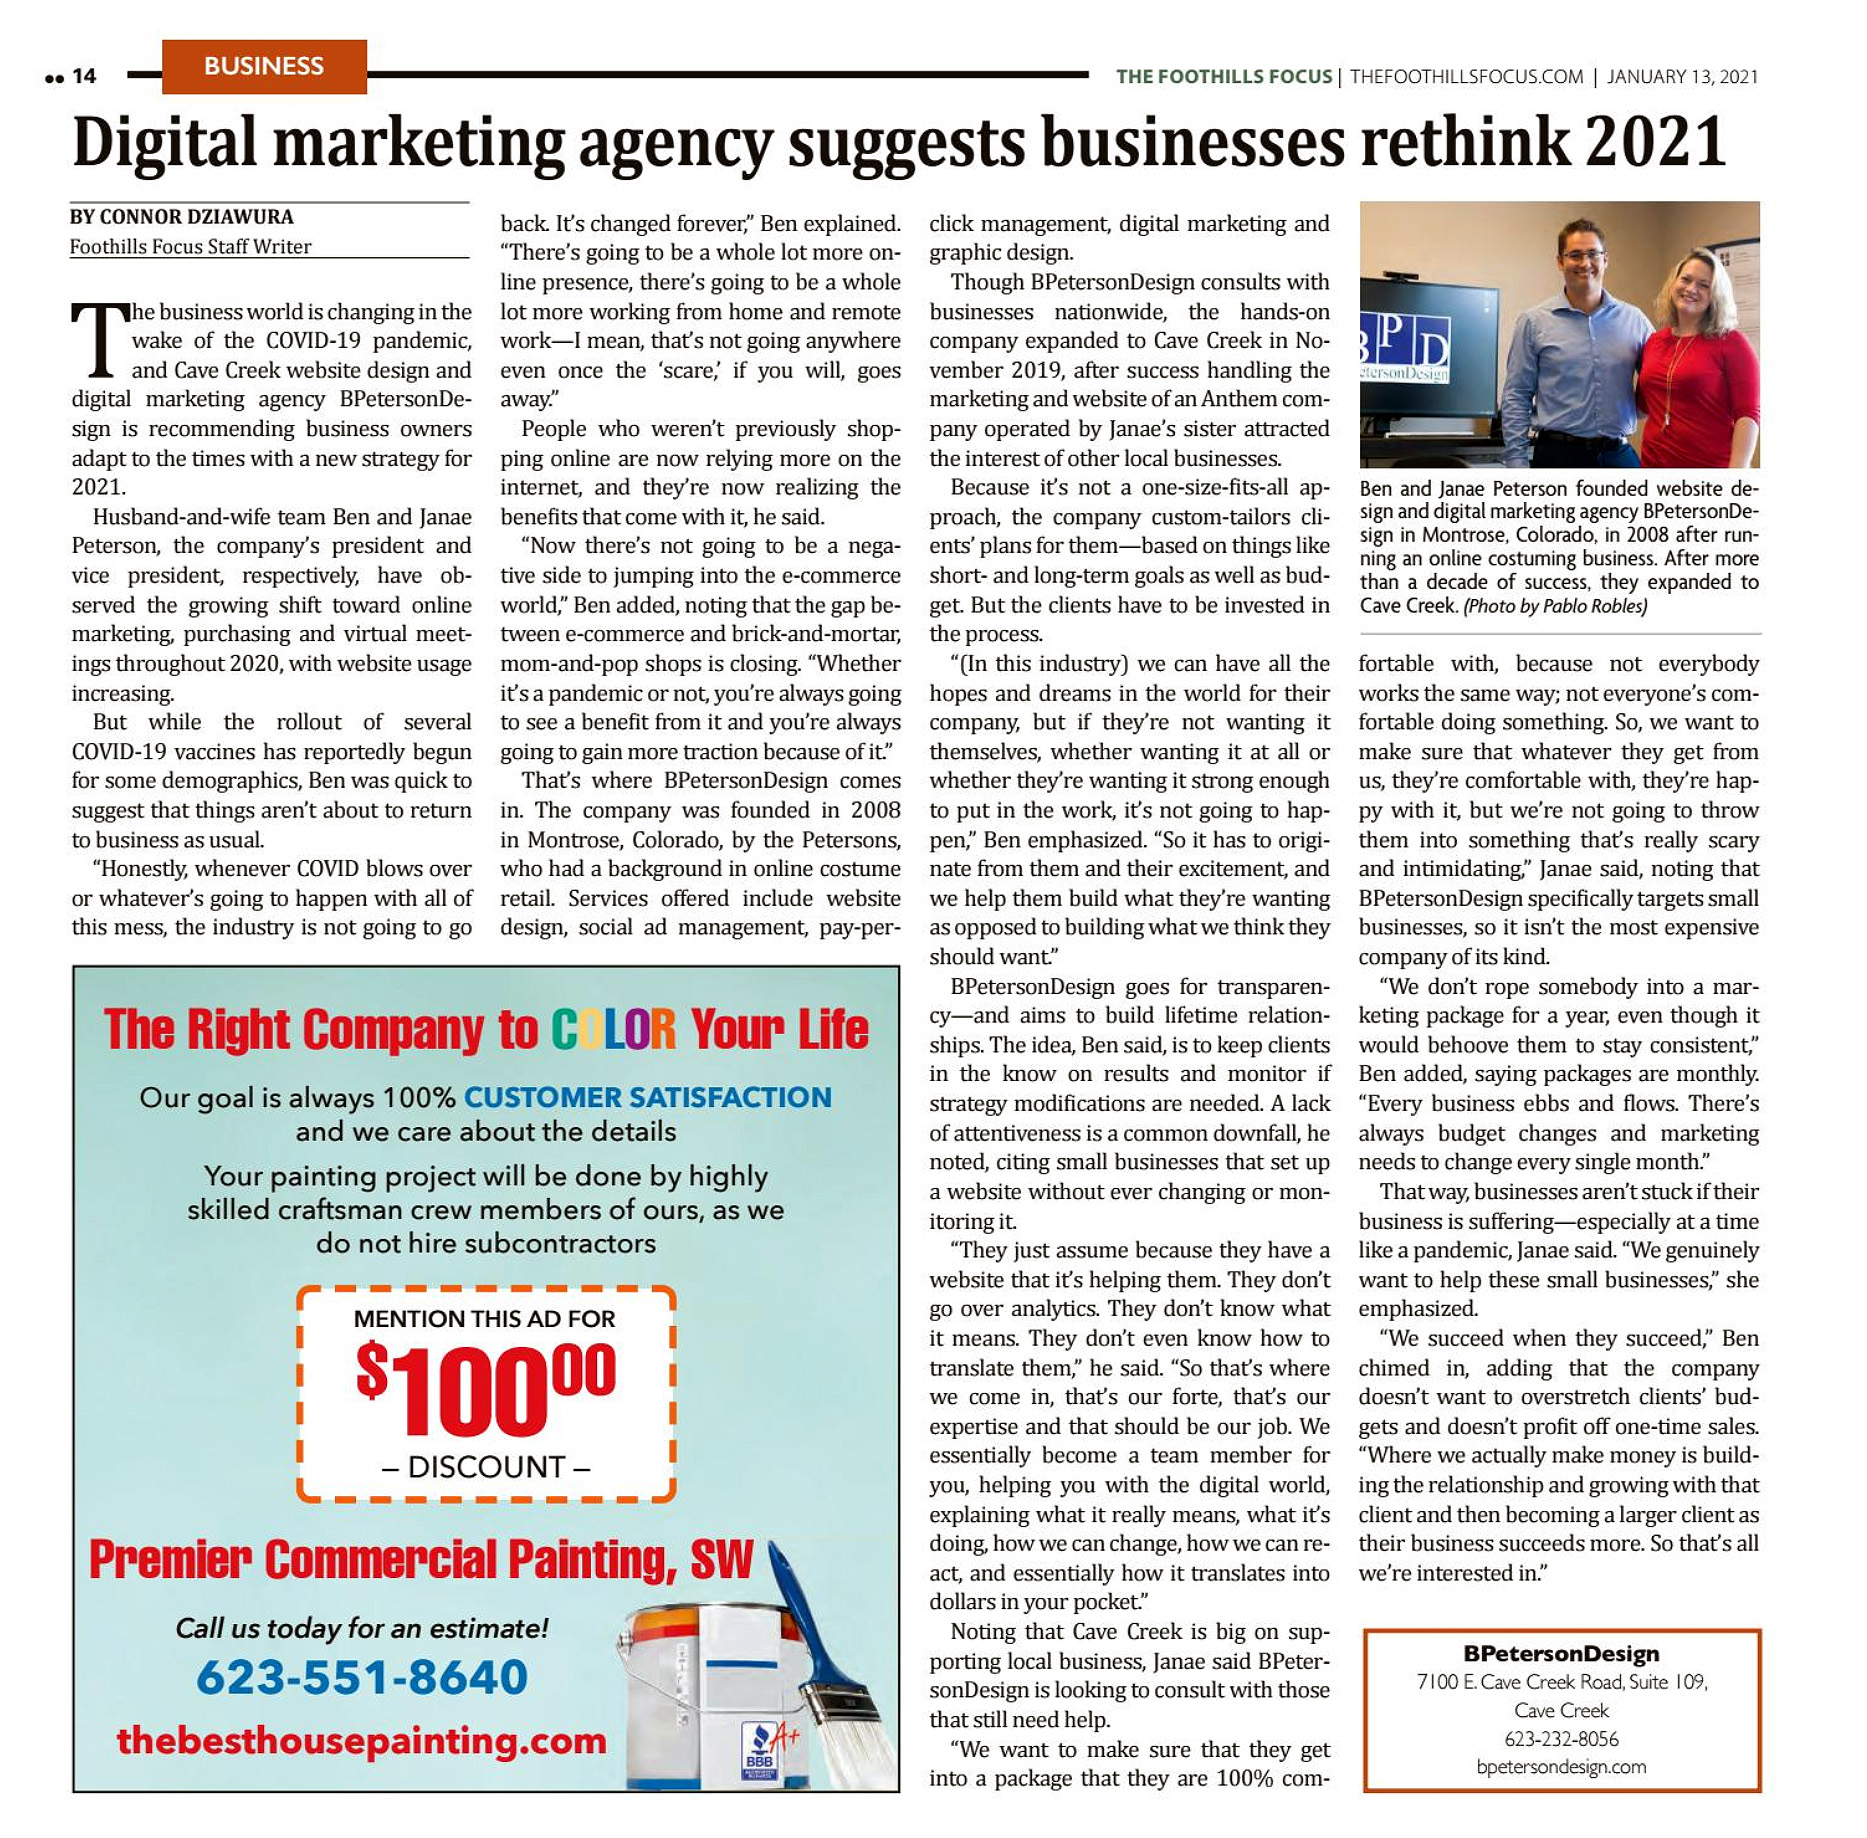 The Foothills Focus - Digital marketing agency suggests businesses rethink 2021